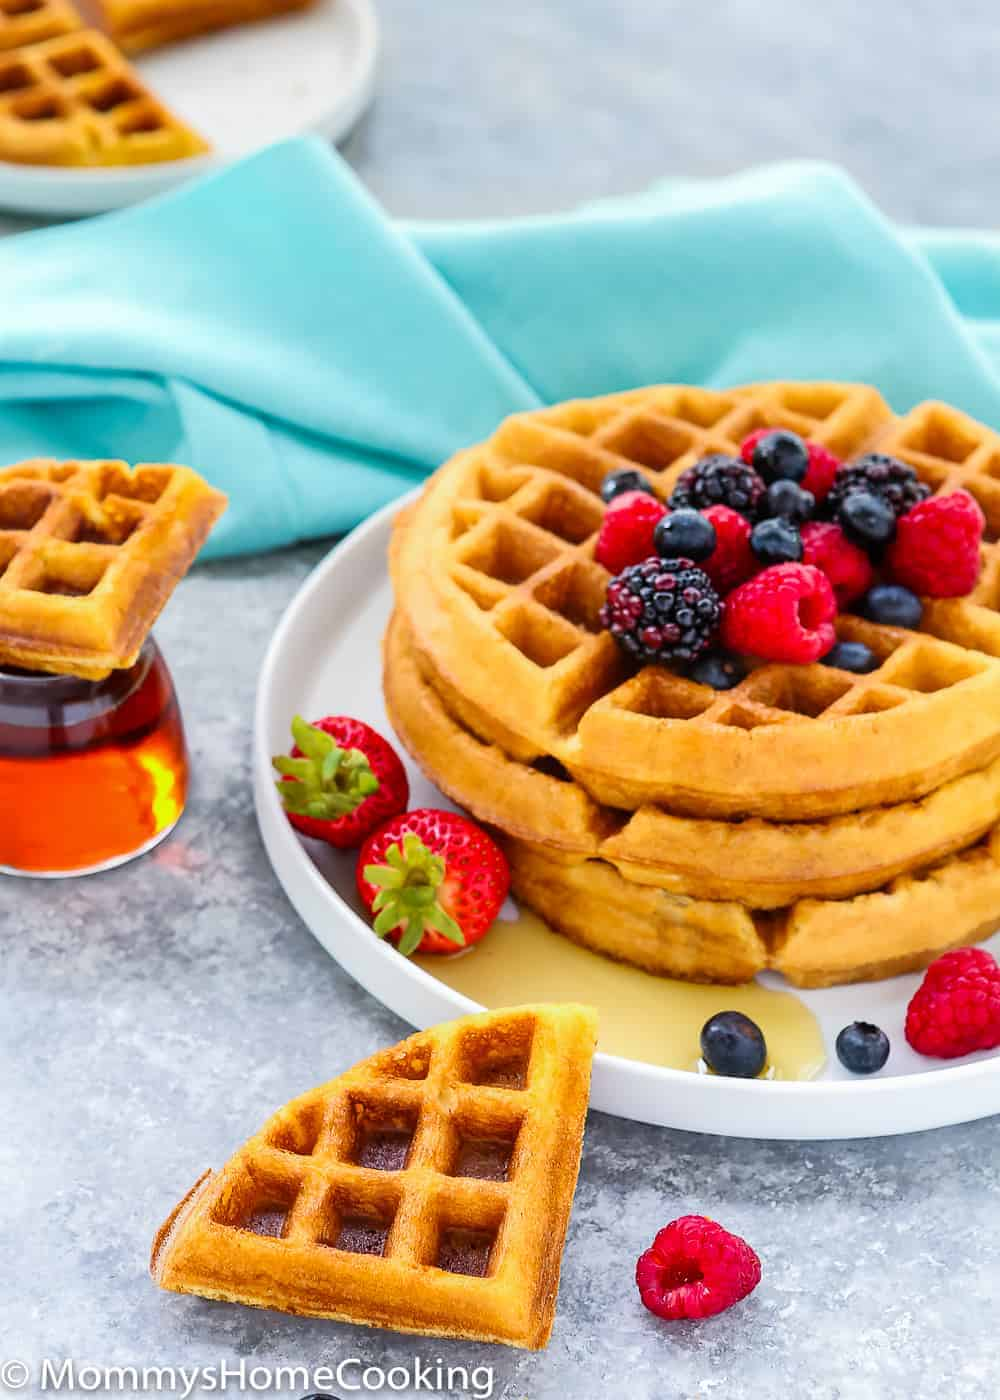 Waffles And Eggs Cake